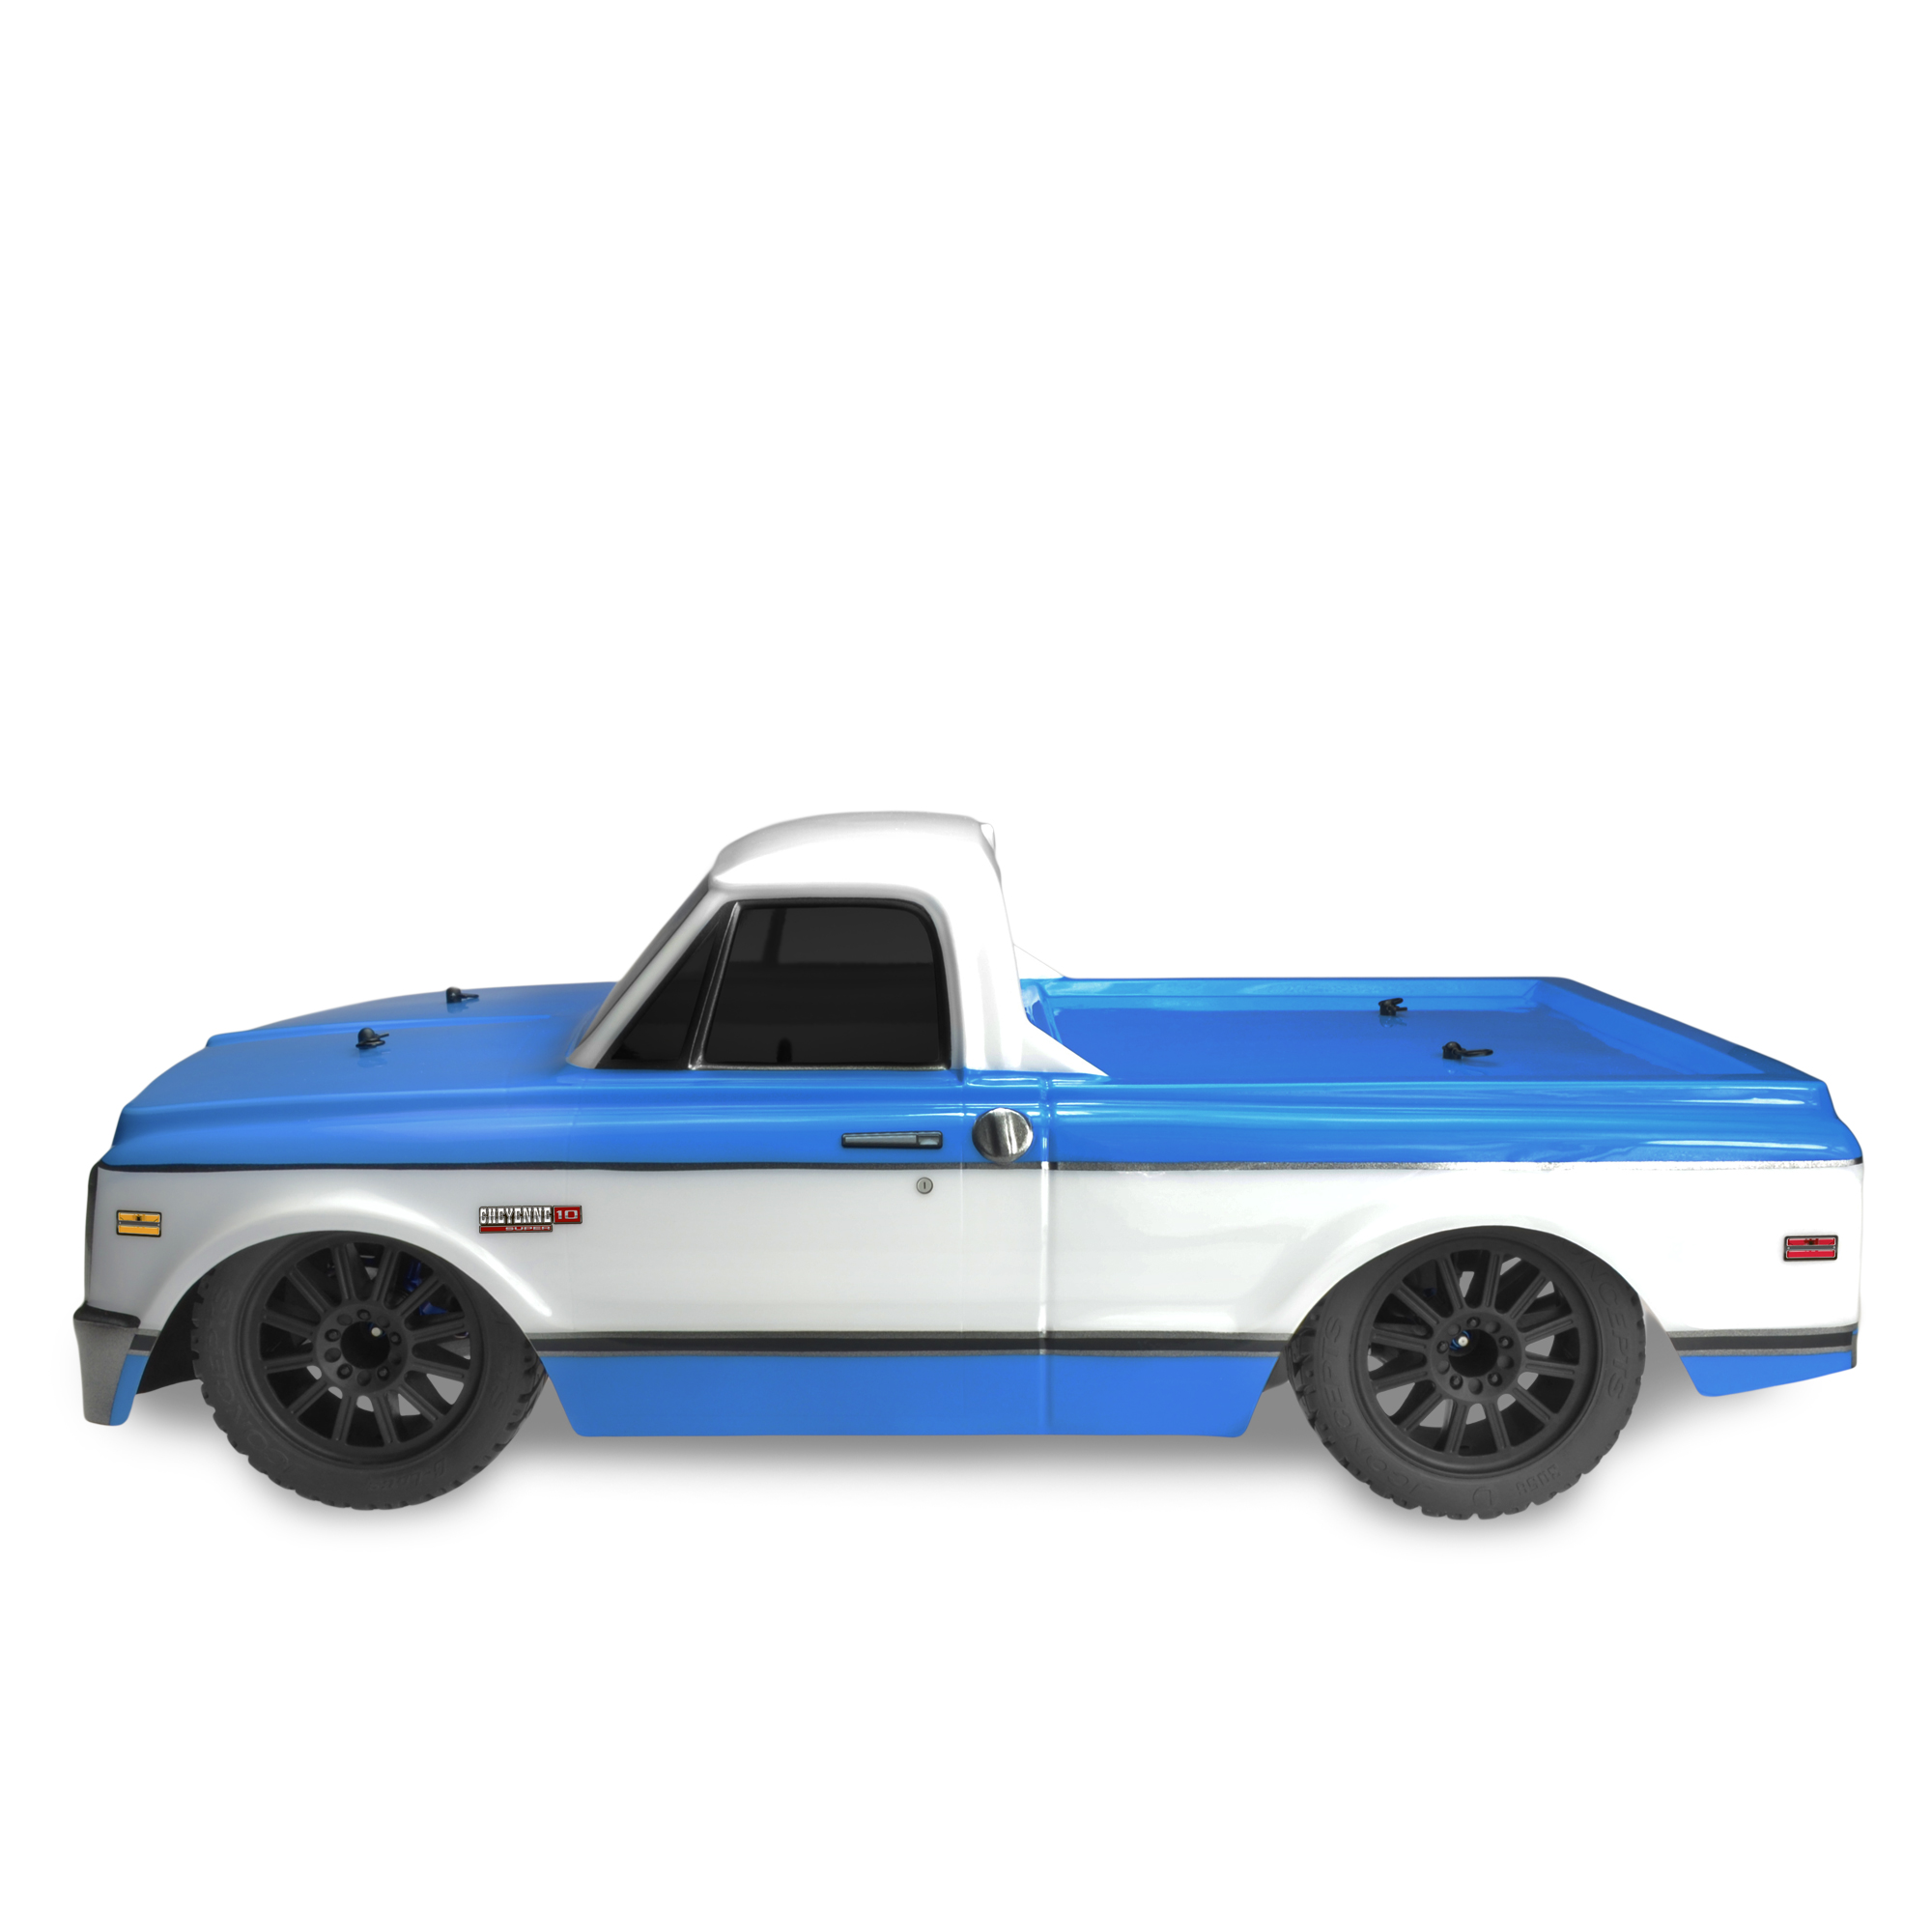 JConcepts New Release – 1972 Chevy C10 Scalpel Body – JConcepts